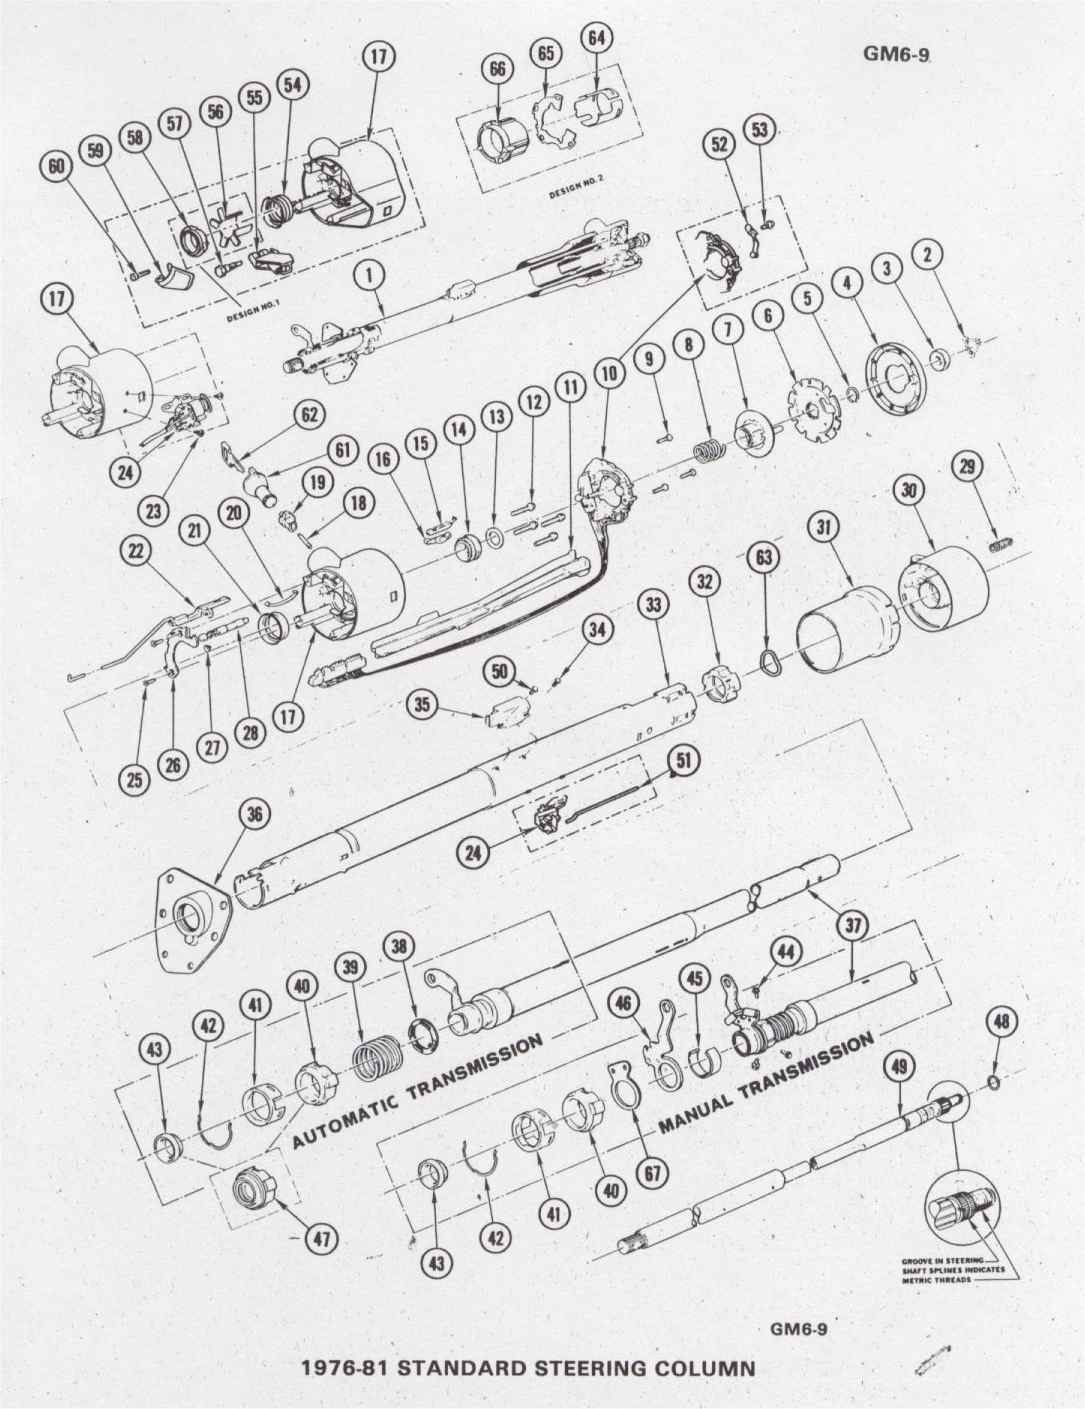 1978 Camaro Wiring Diagram from getdrawings.com